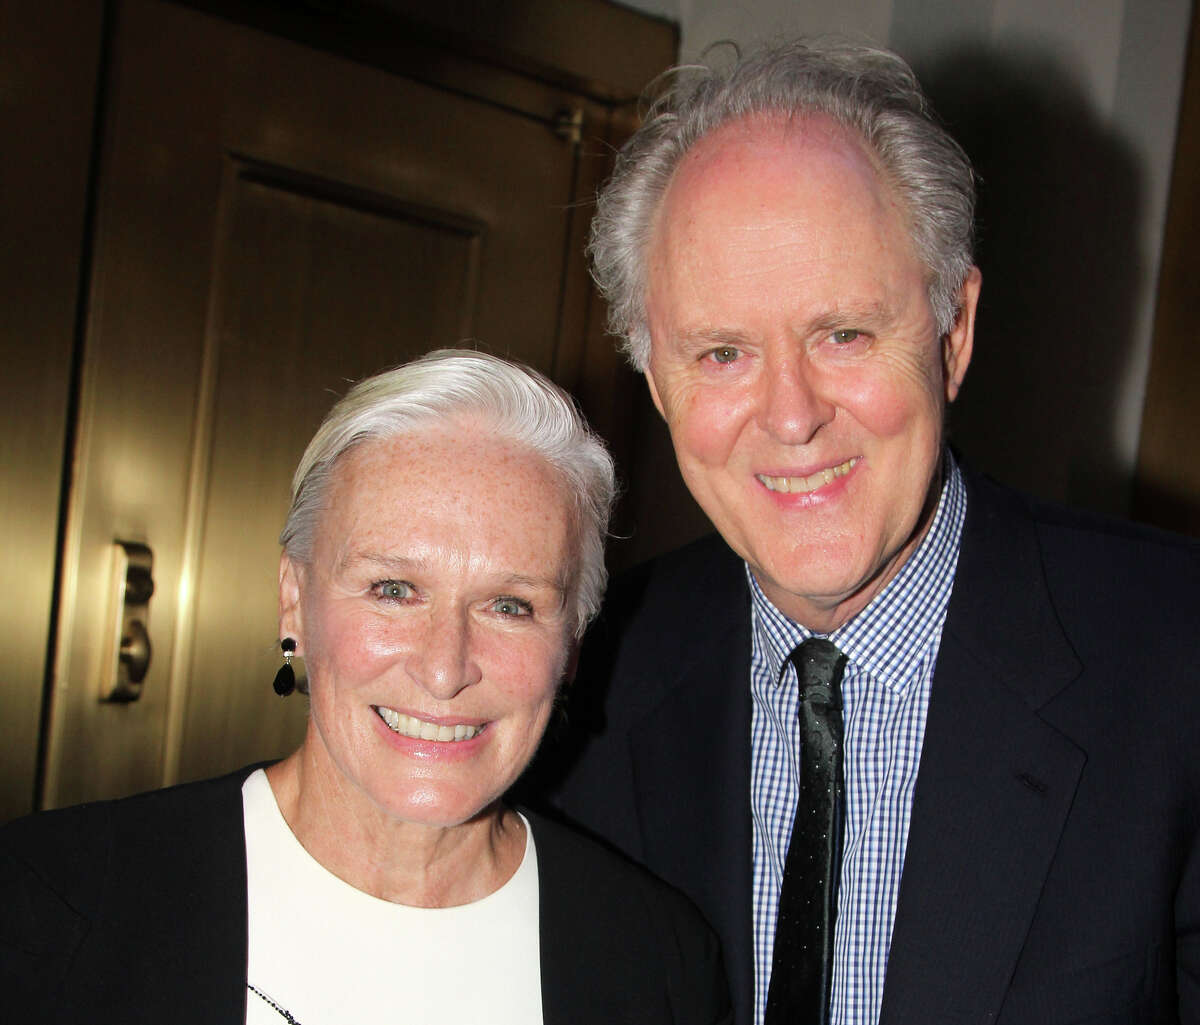 """Glenn Close and John Lithgow pose at the Opening Night of """"You Can't Take It With You"""" on Broadway at The Longacre Theatre on September 28, 2014 in New York City."""